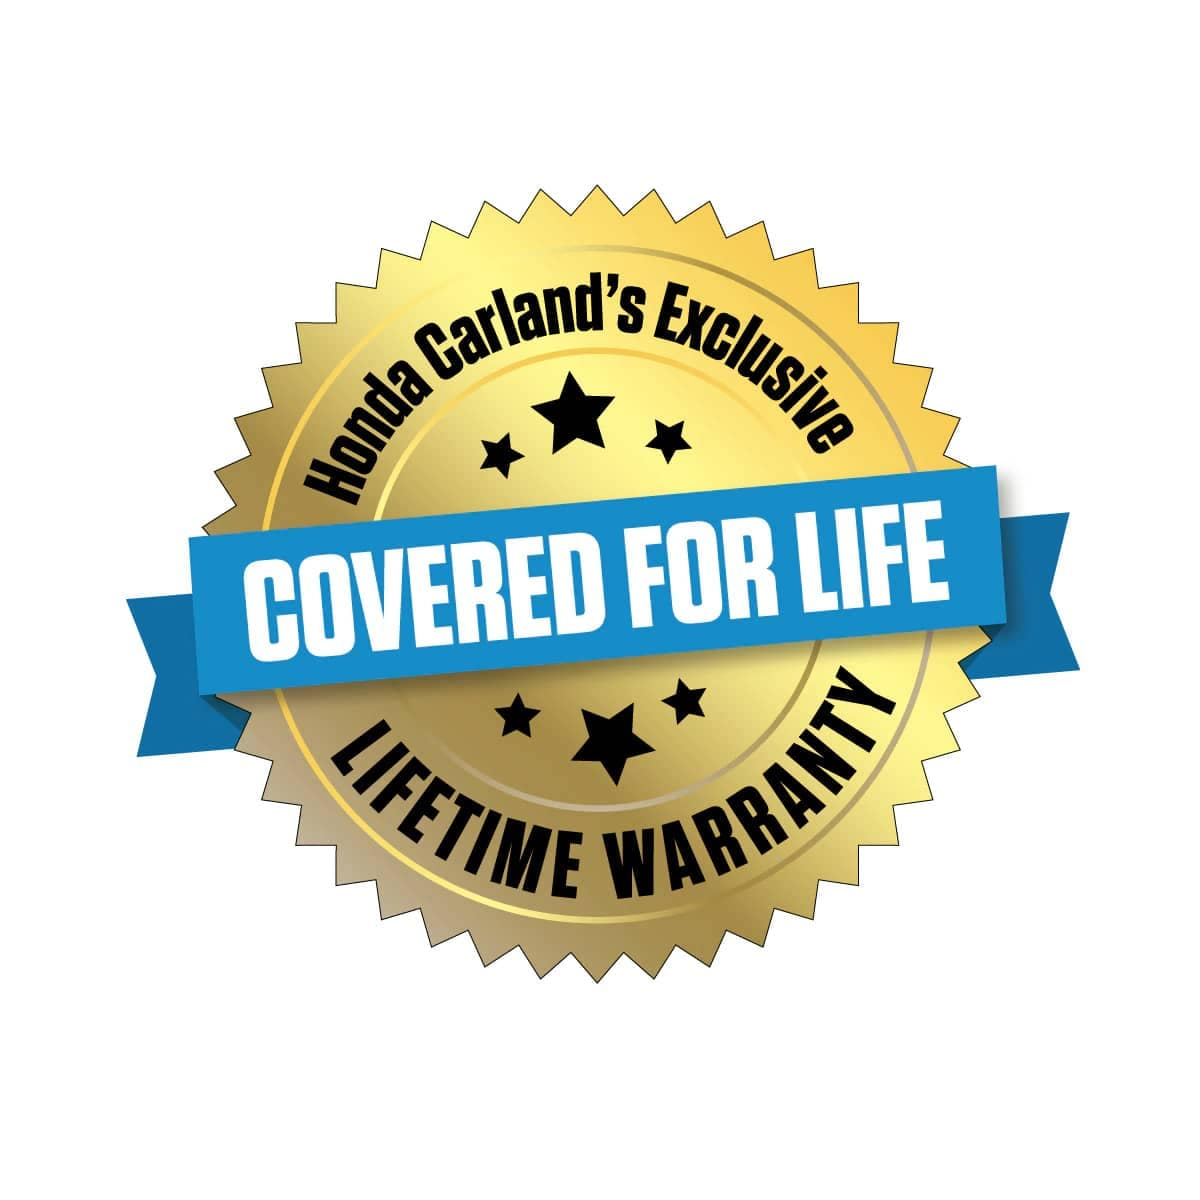 Covered for Life banner